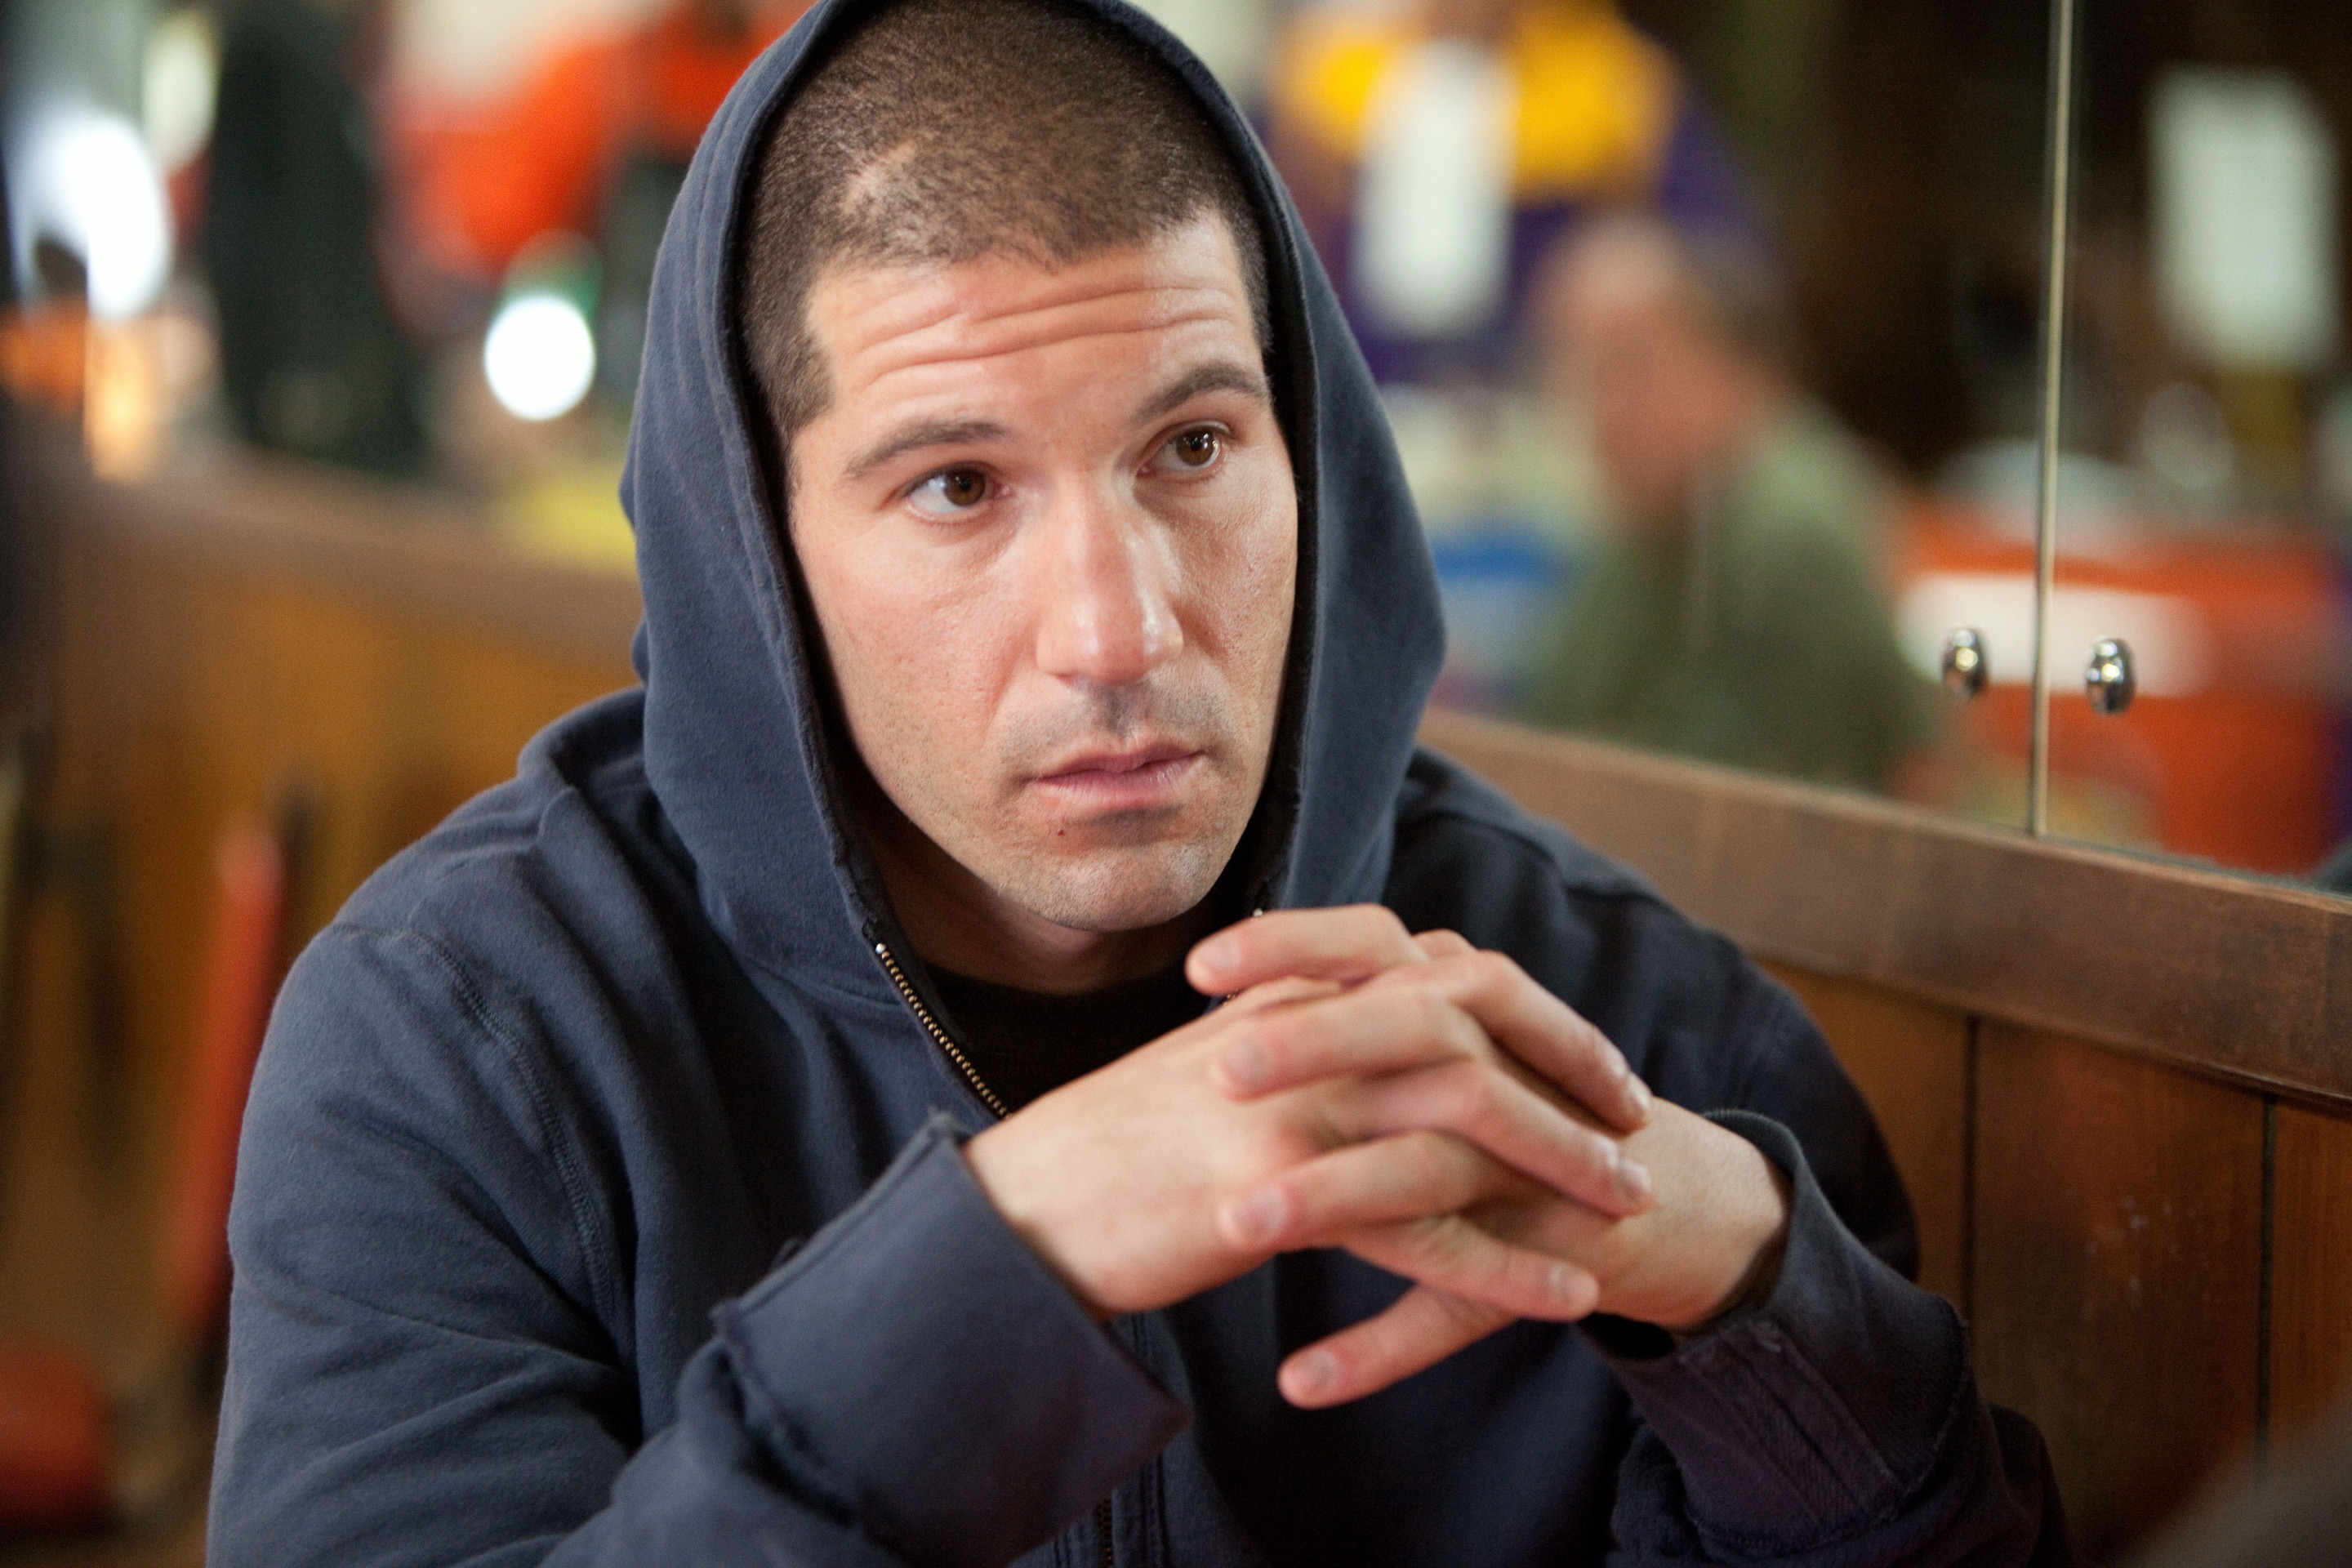 Wolf Of Wall Street Wallpaper Iphone Jon Bernthal Wallpapers High Quality Download Free